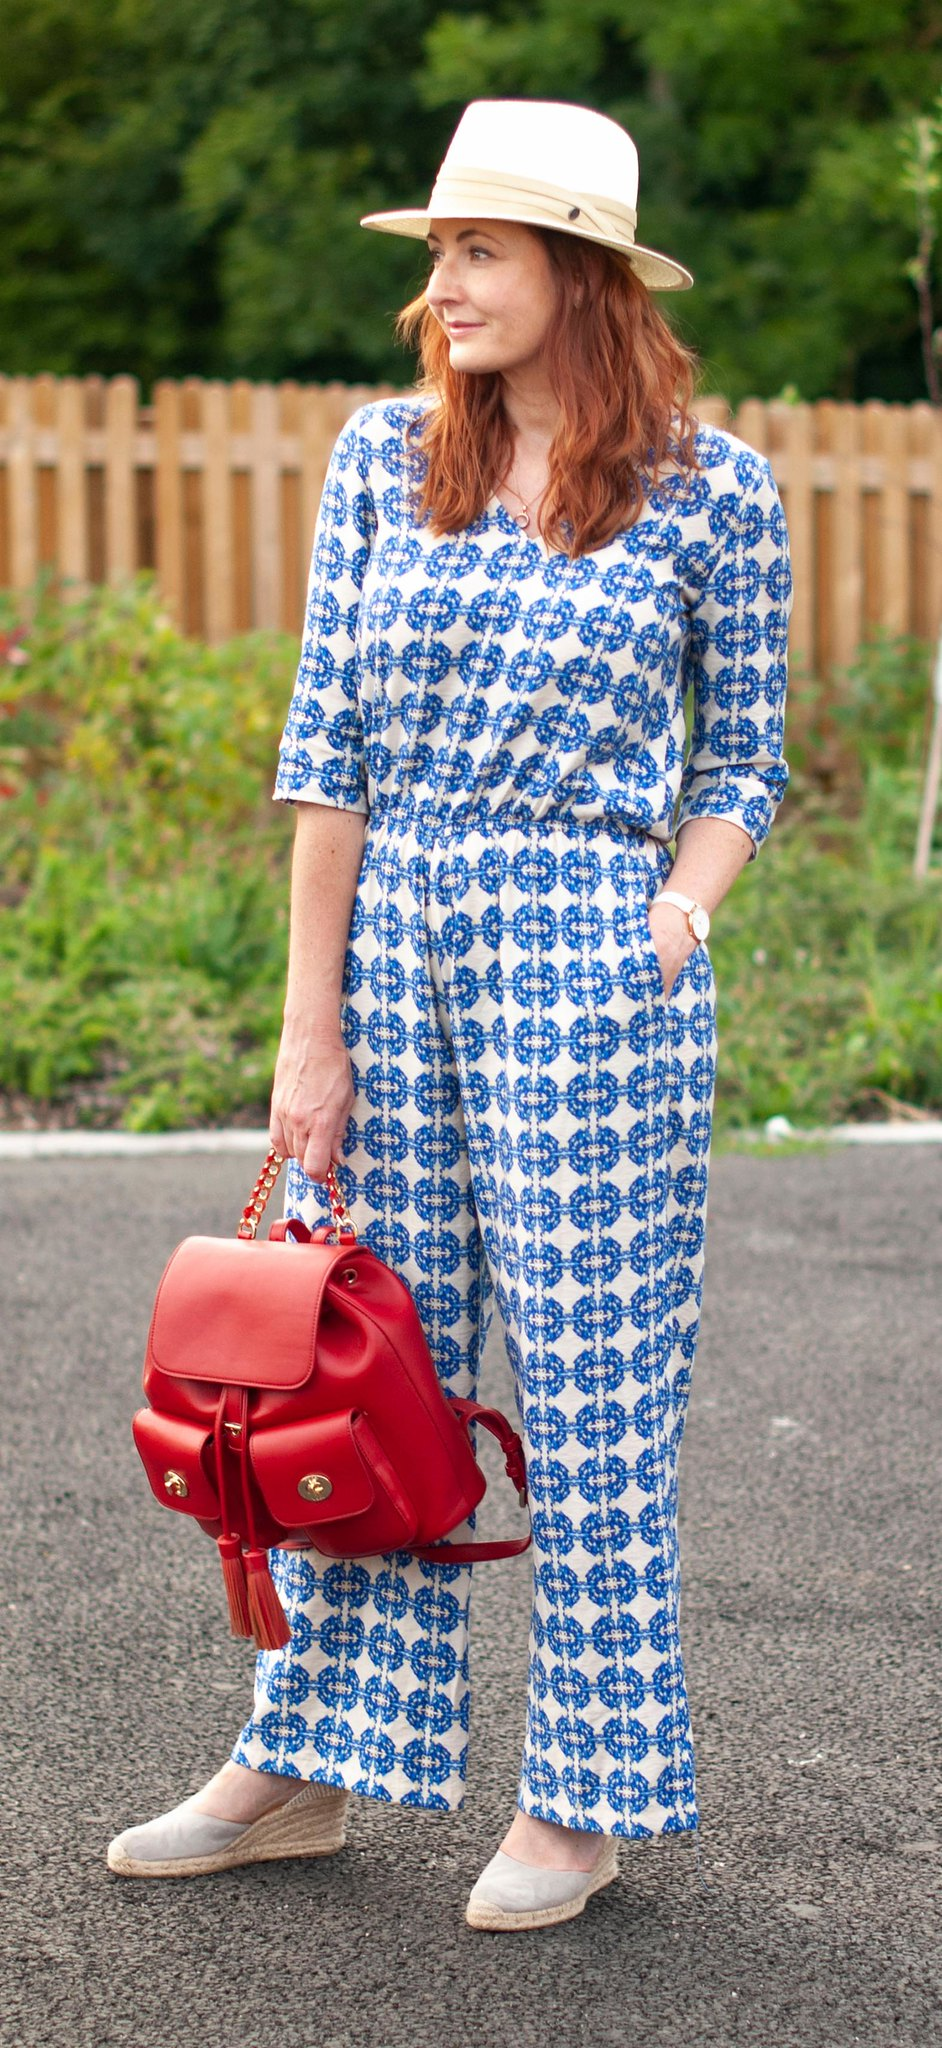 Like Nothing Else in the Shops: A Blue Patterned Jumpsuit \ grey wedge espadrilles \ cream Panama hat \ red backpack | Not Dressed As Lamb, over 40 style